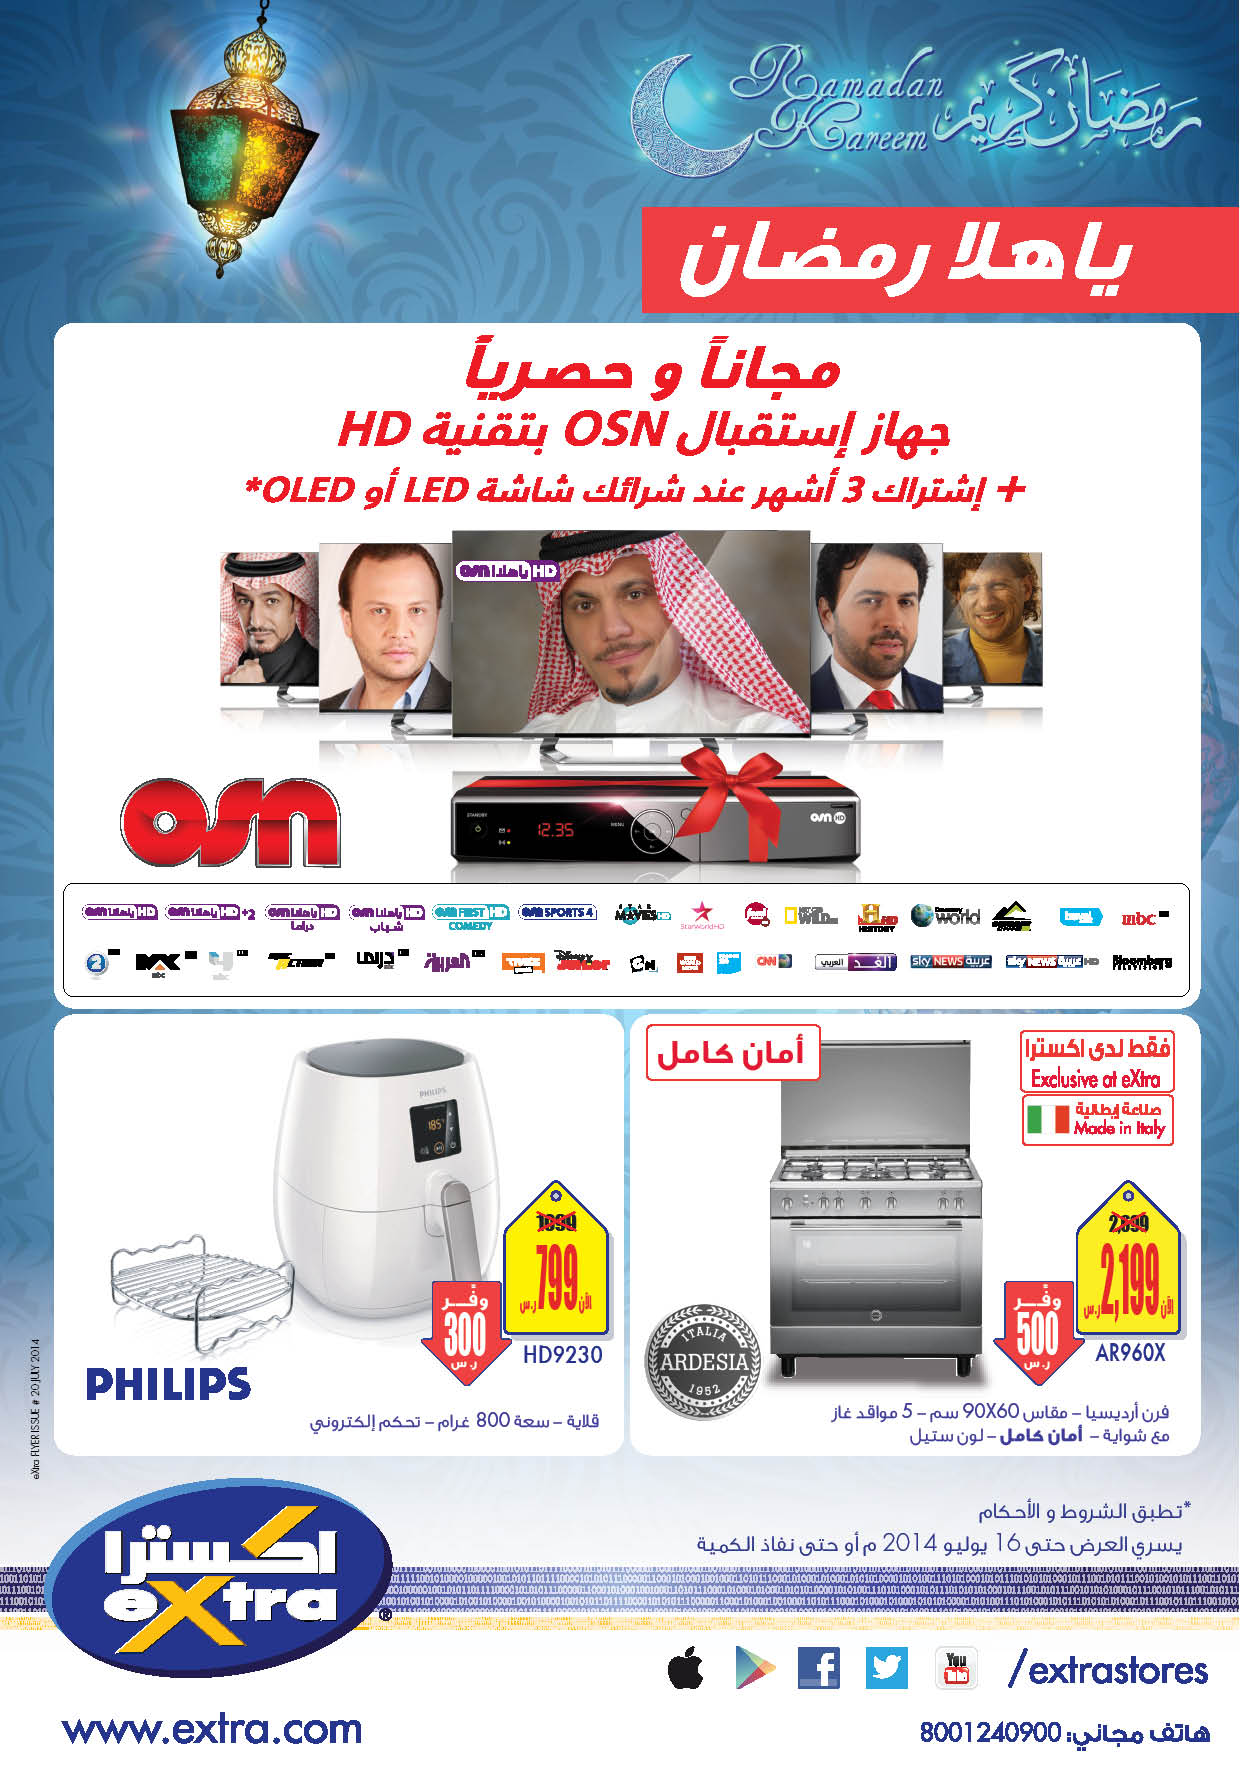 Ramadan offers at Extra Stores : 3 to 17 July 2014